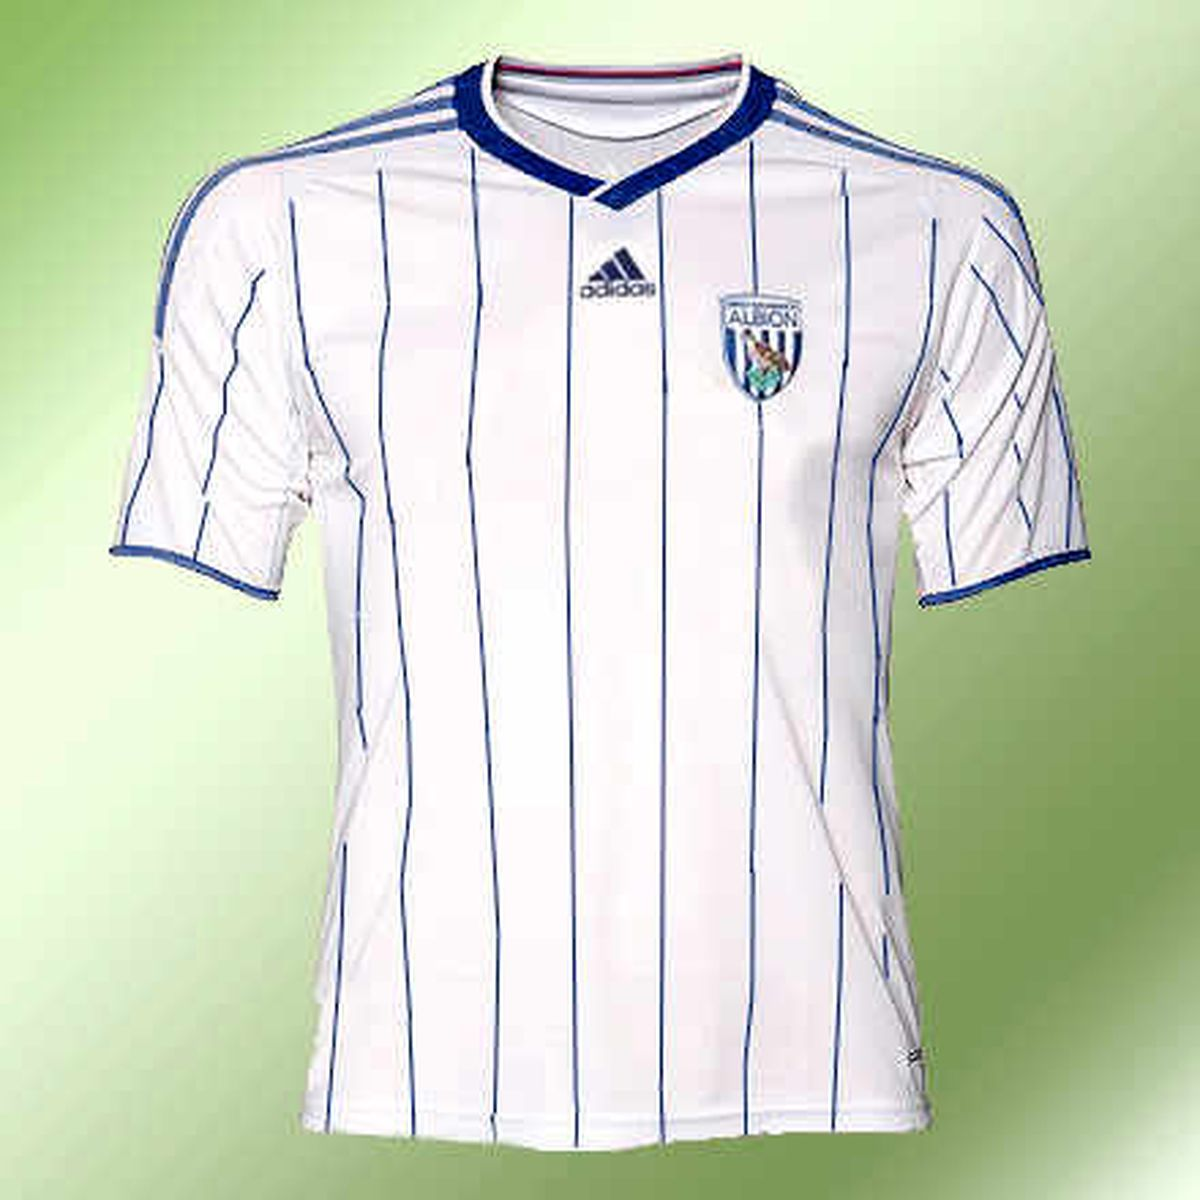 An artist's impression of what the new Albion kit might look like